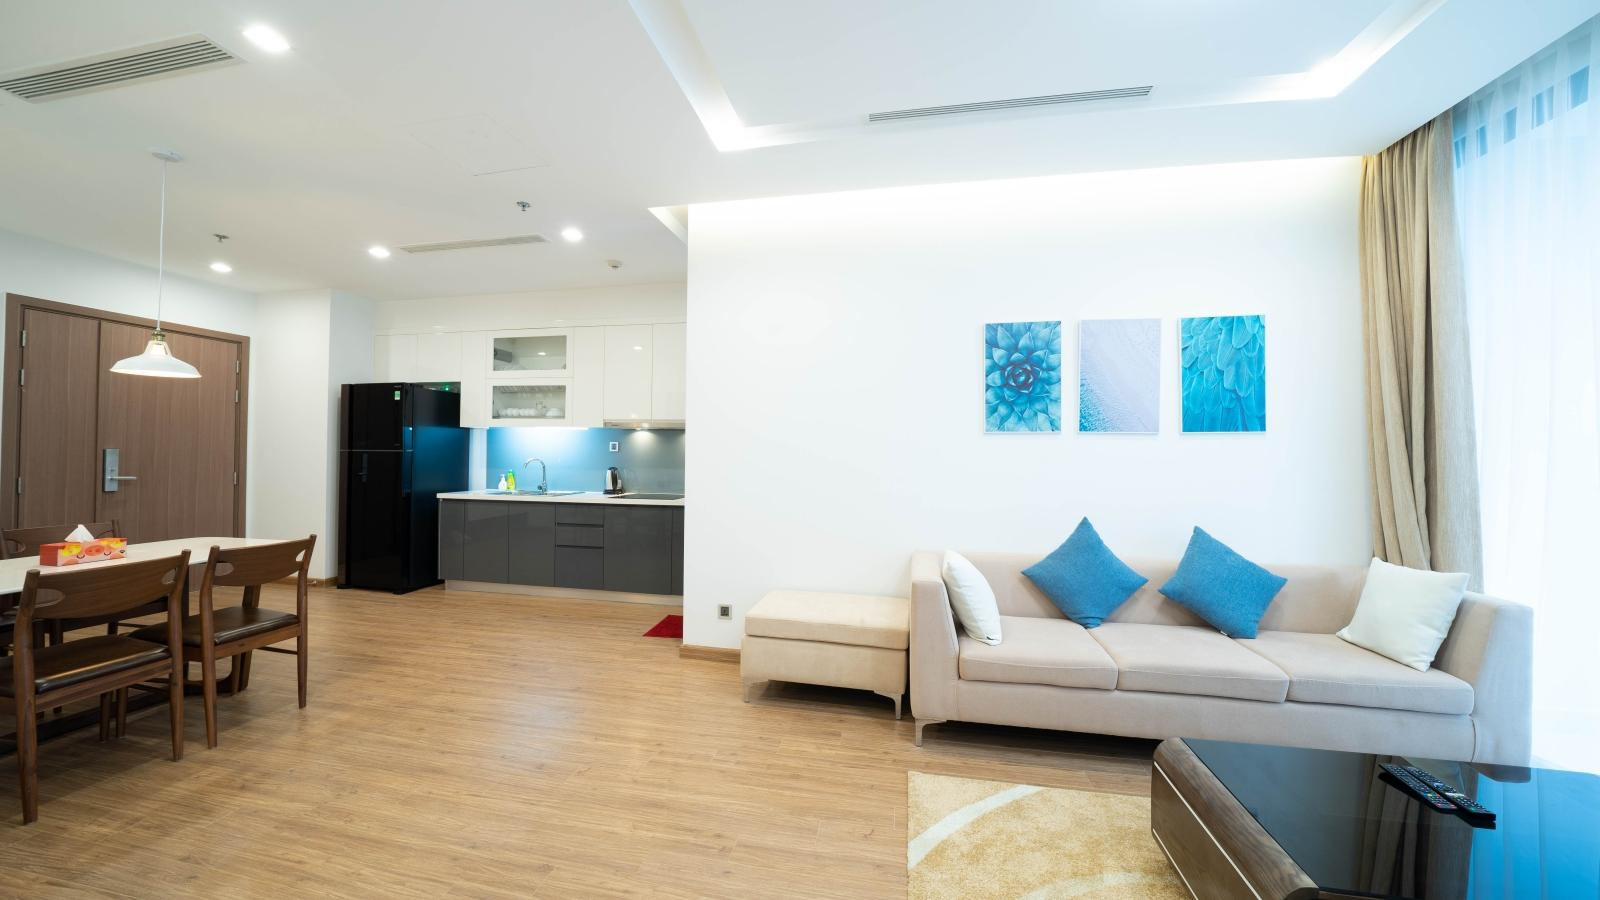 Modern and New 2 Bedroom Apartment for rent in Vinhomes Metropolis Hanoi